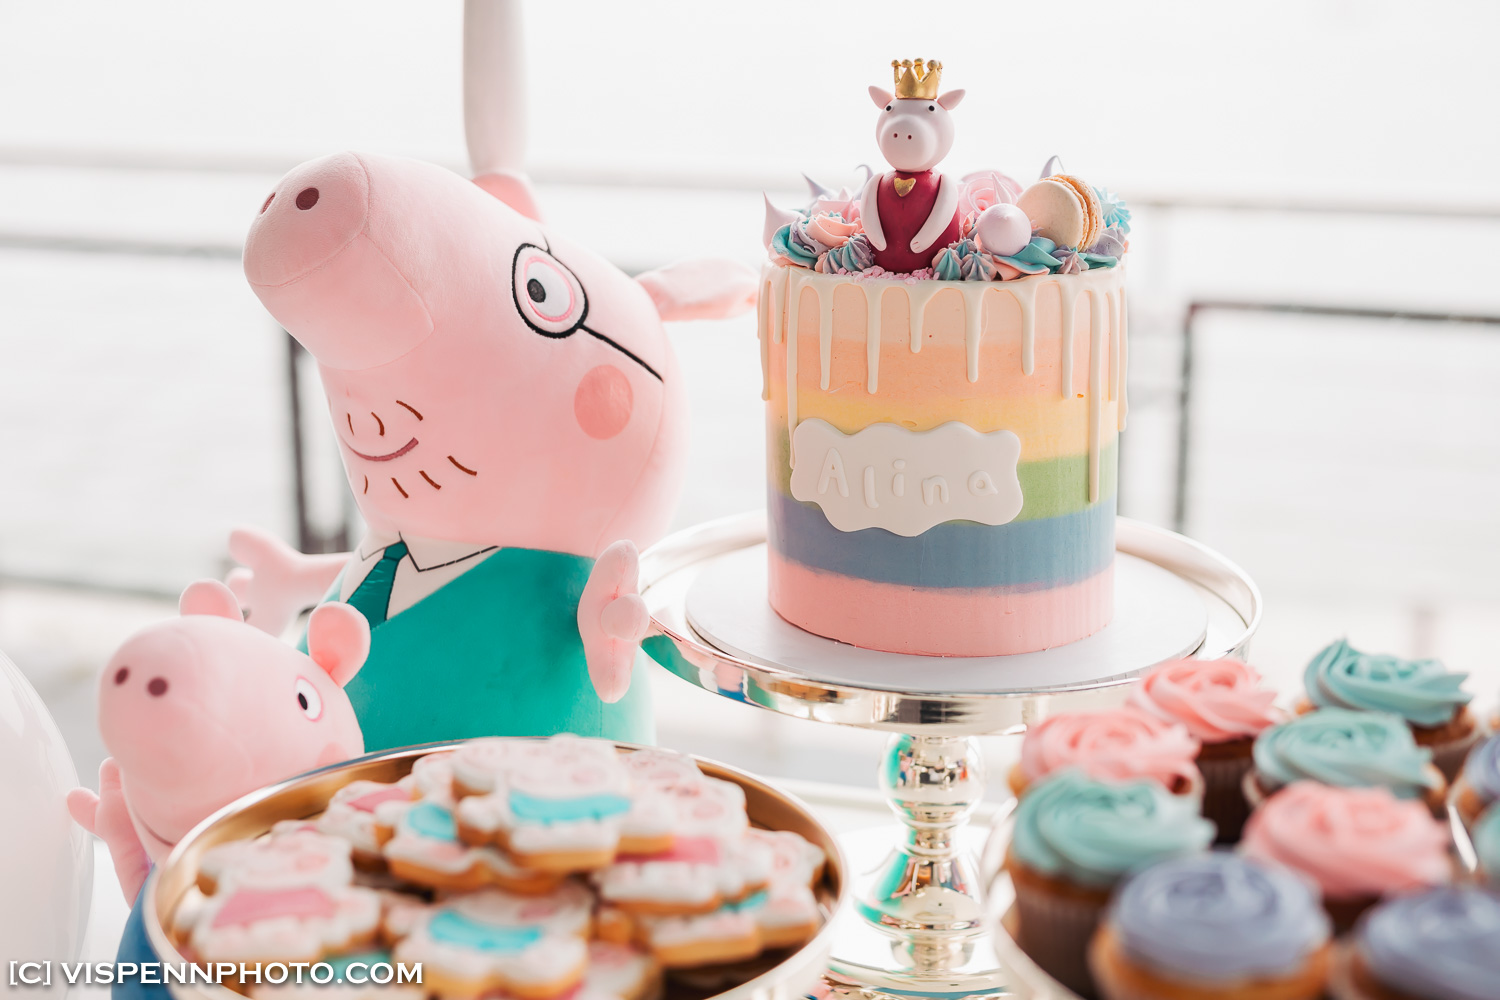 Melbourne Baby Family Birthday Party Photographer 墨尔本 百日宴 满月宴 周岁宴 摄影 VISPENN 5D5 7935